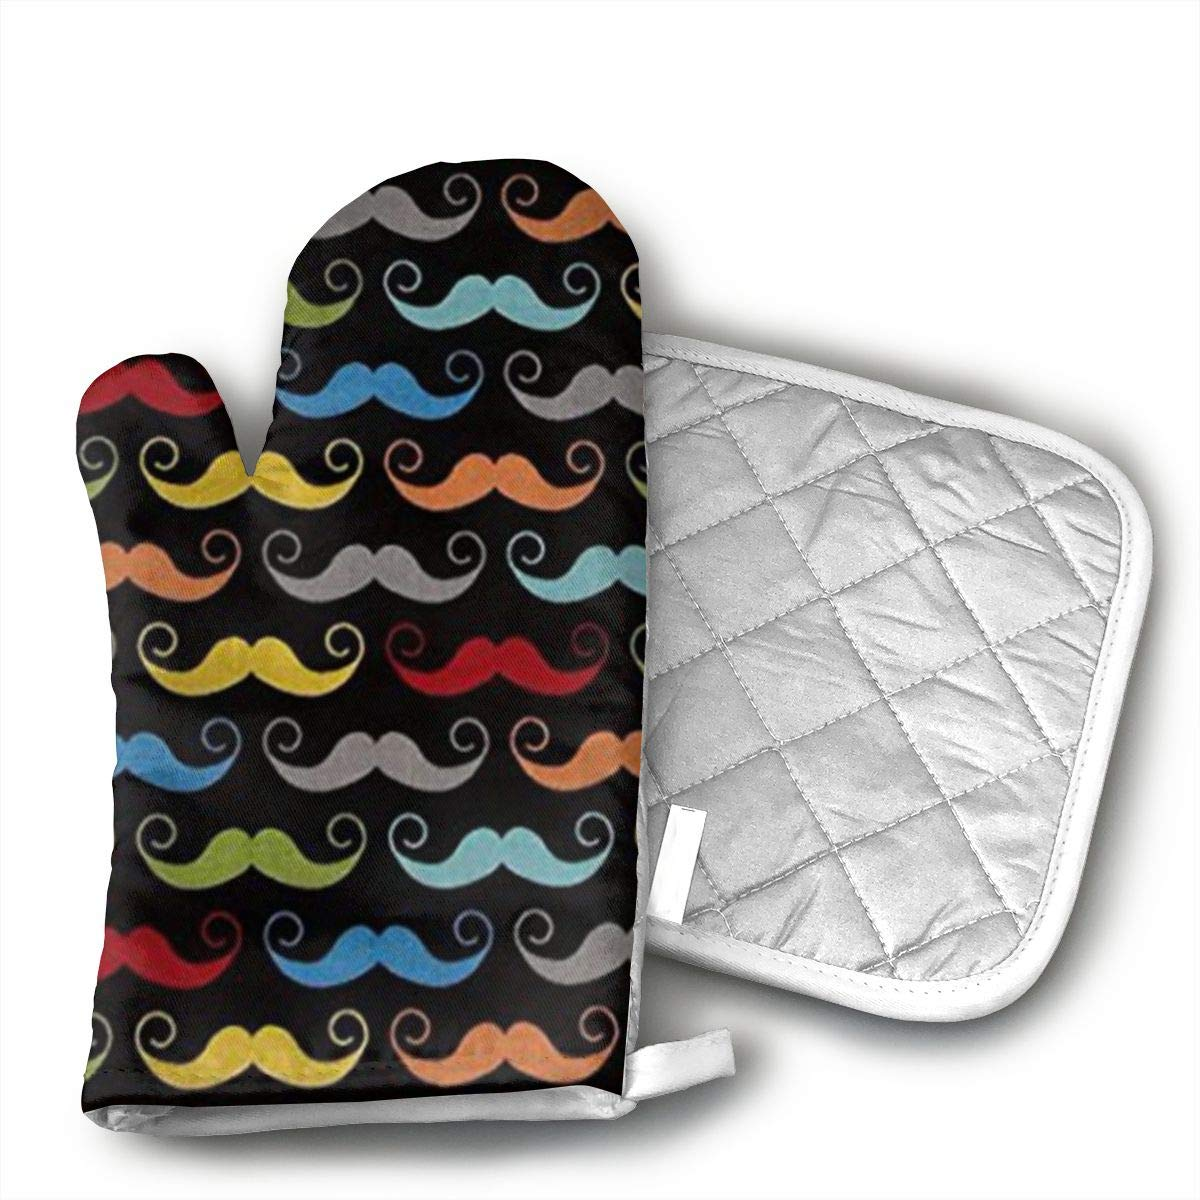 Wiqo9 Blake Geekly Chic Mustache Black Oven Mitts and Pot Holders Kitchen Mitten Cooking Gloves,Cooking, Baking, BBQ.